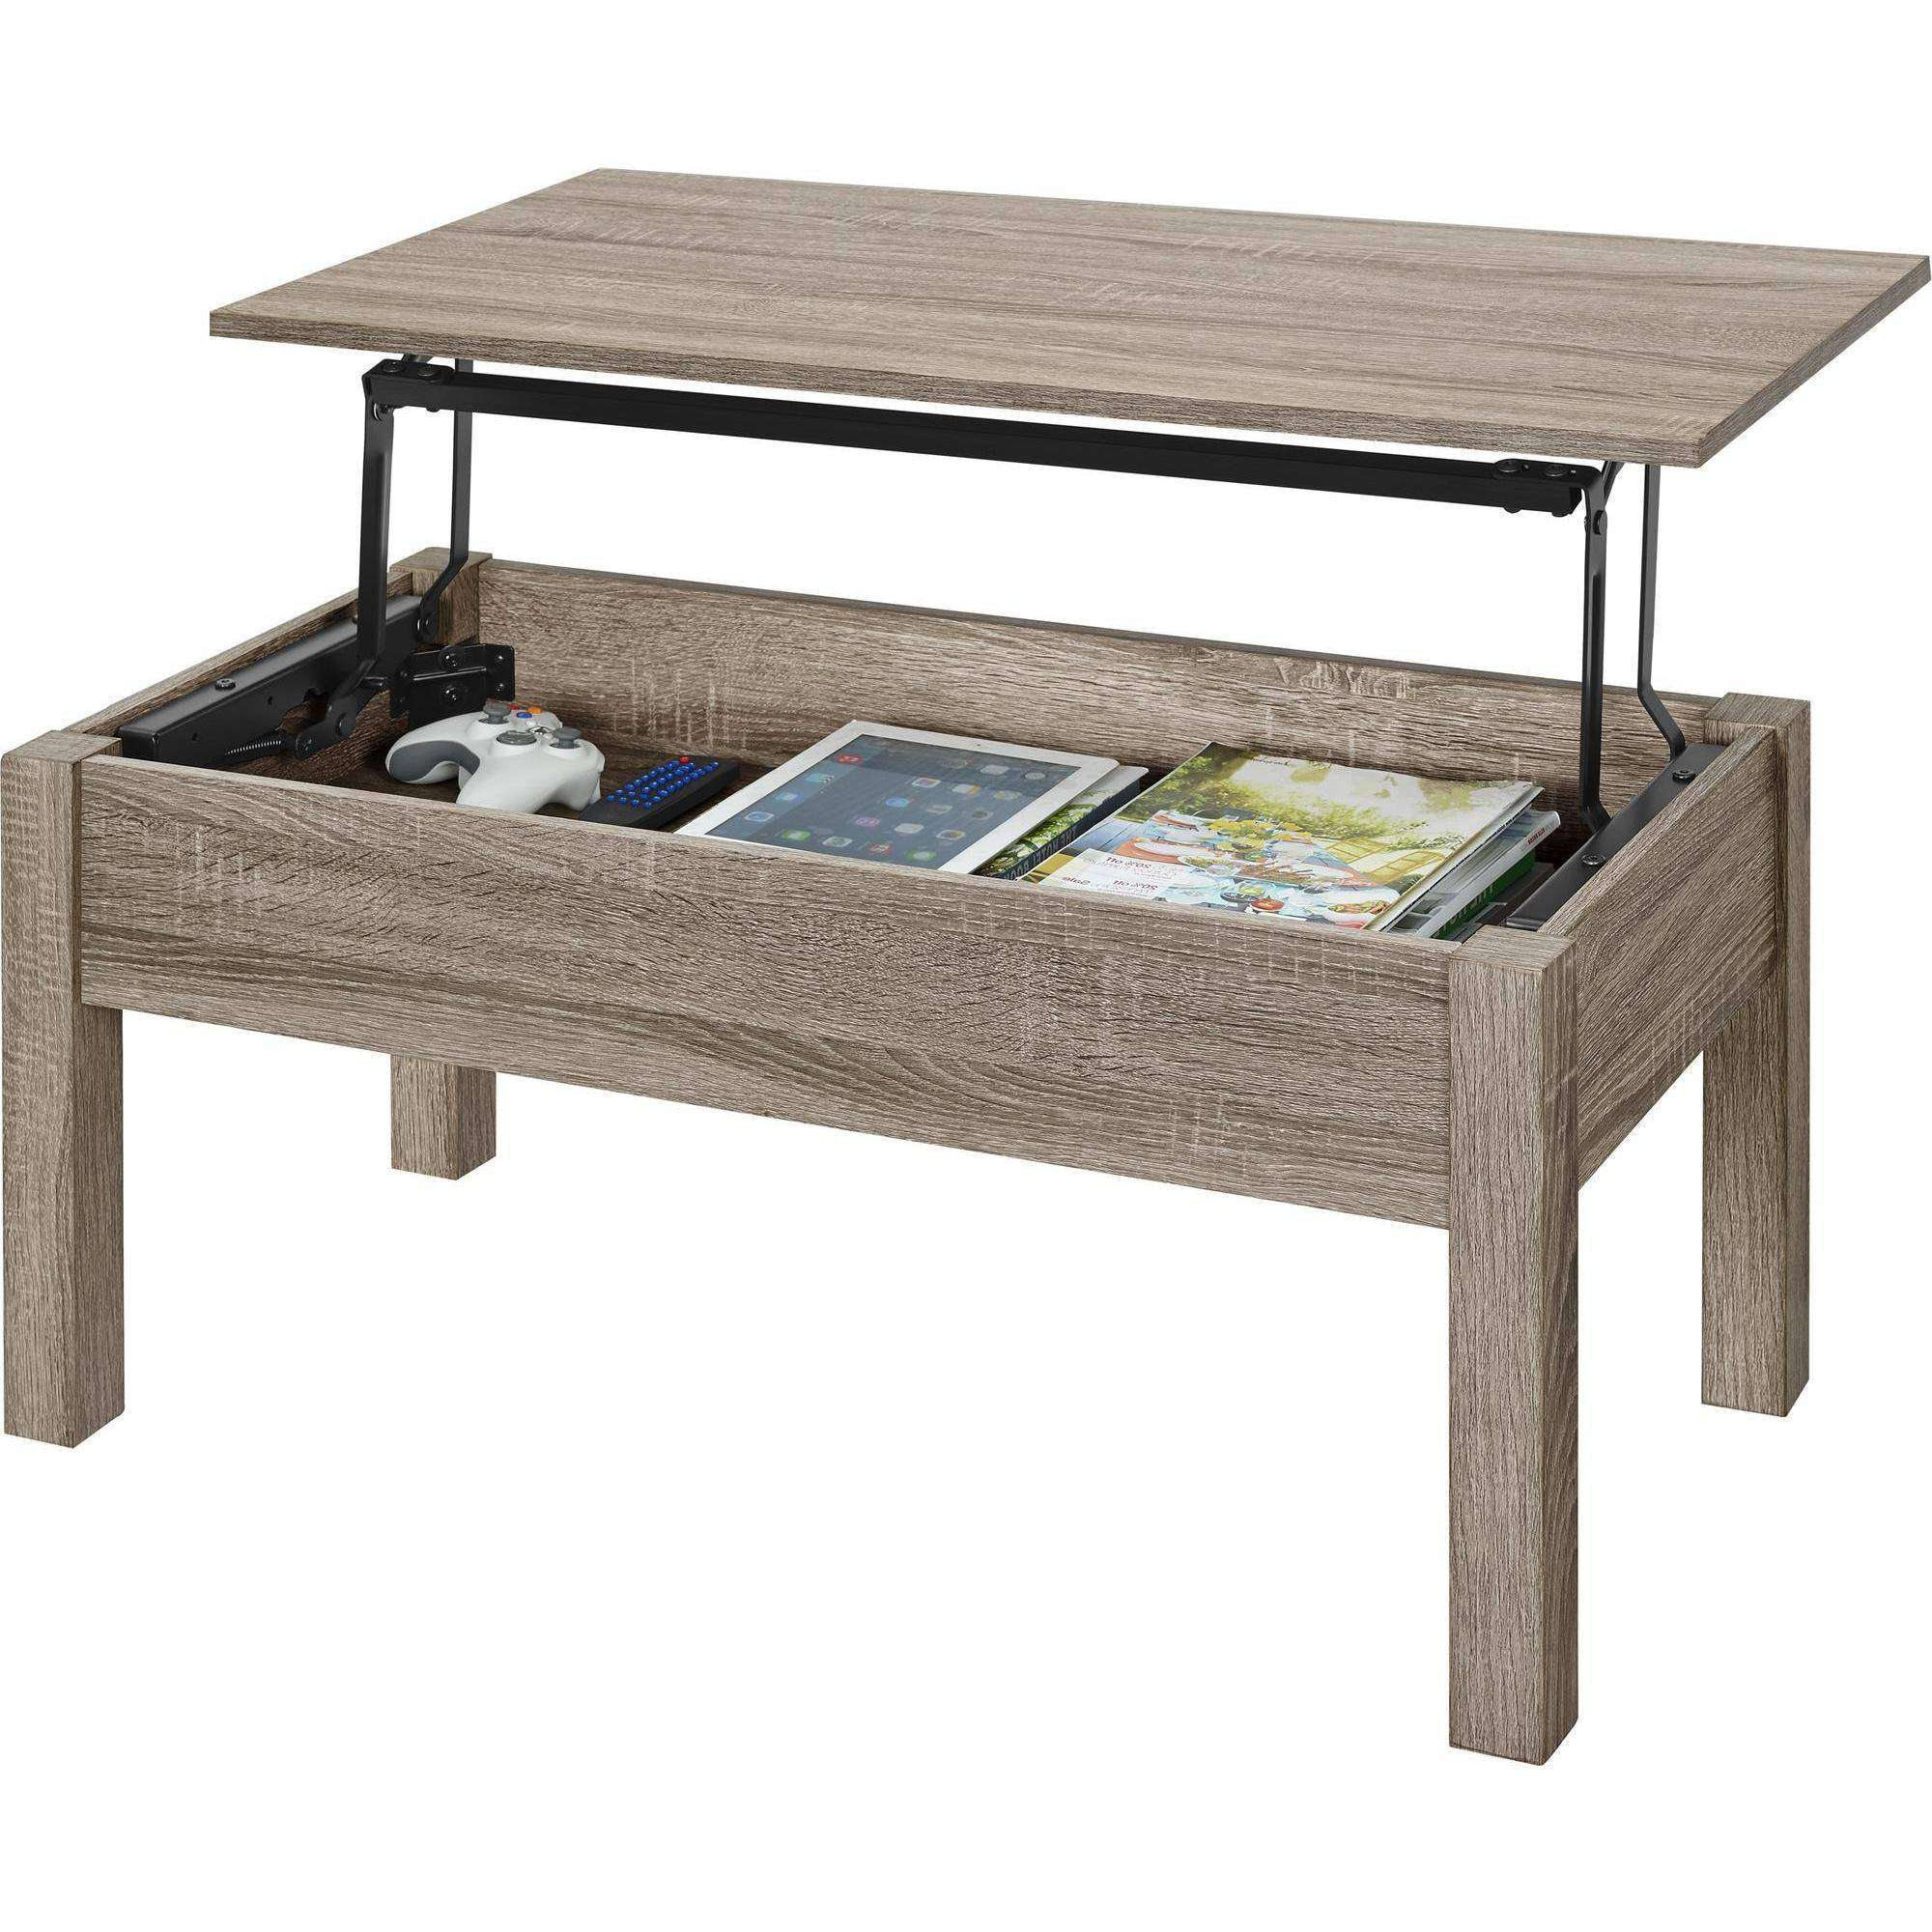 Mainstays Lift Top Coffee Table, Multiple Colors – Walmart With Regard To 2017 Top Lifting Coffee Tables (View 11 of 20)